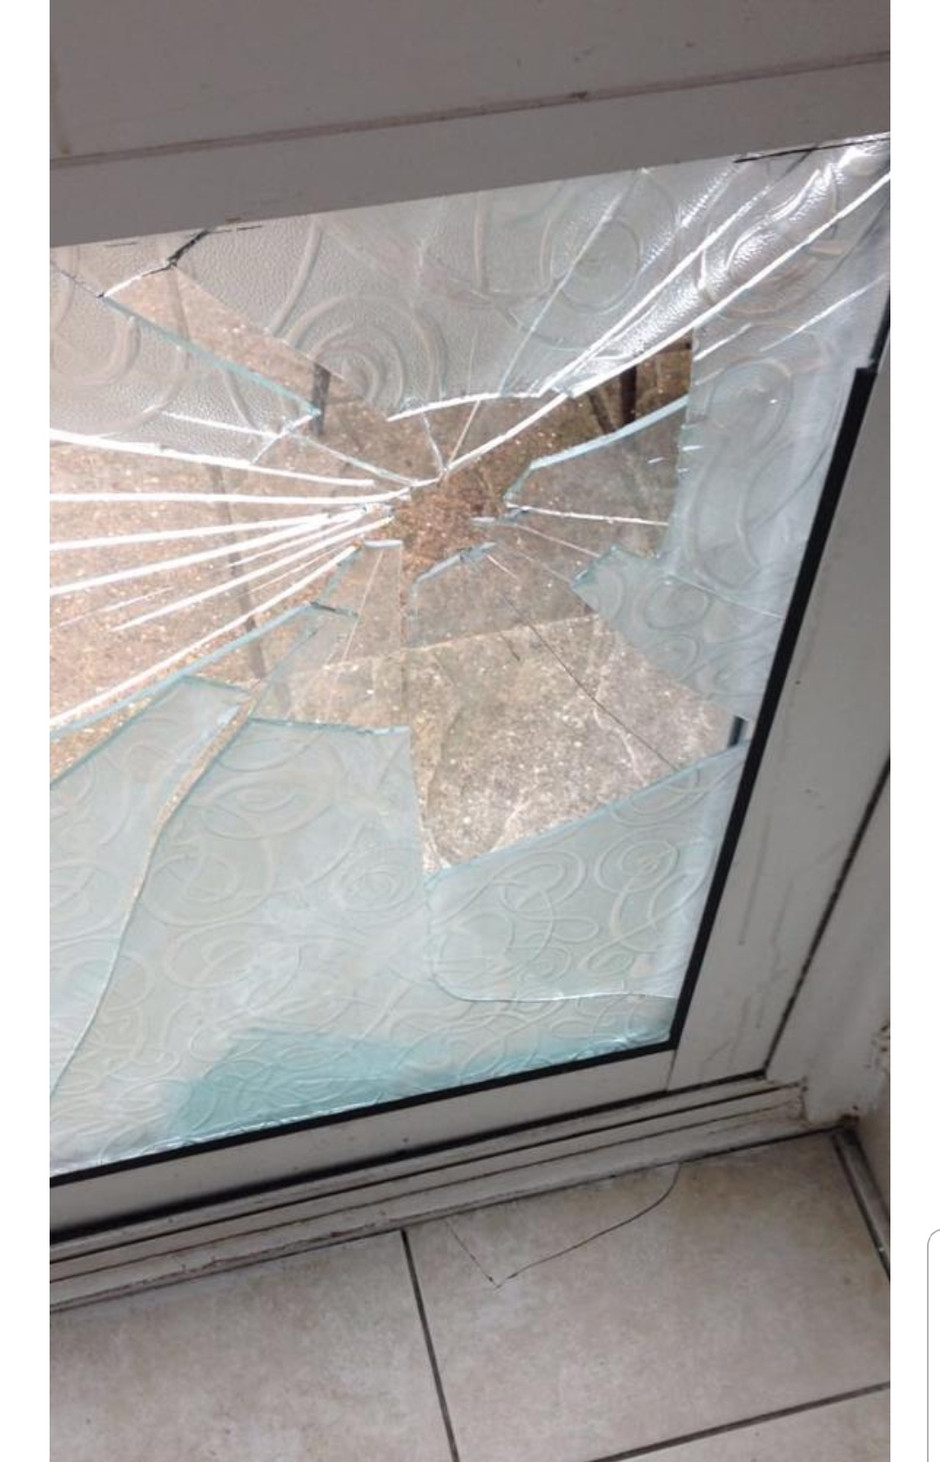 What a pane......a broken window!